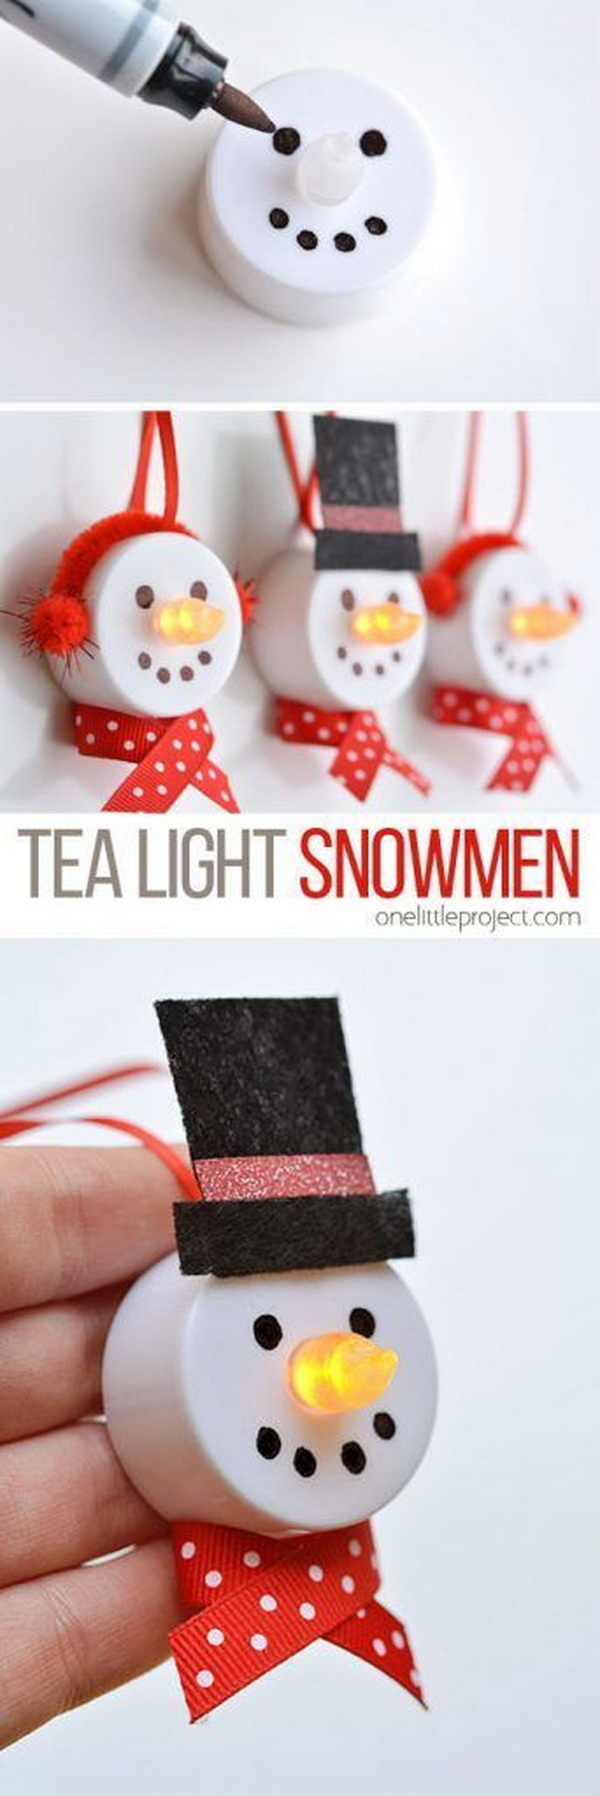 Tea Light Snowman Ornaments. These tea light snowman ornaments are easy to make and look adorable on your Christmas tree and aslo make budget Christmas gifts!